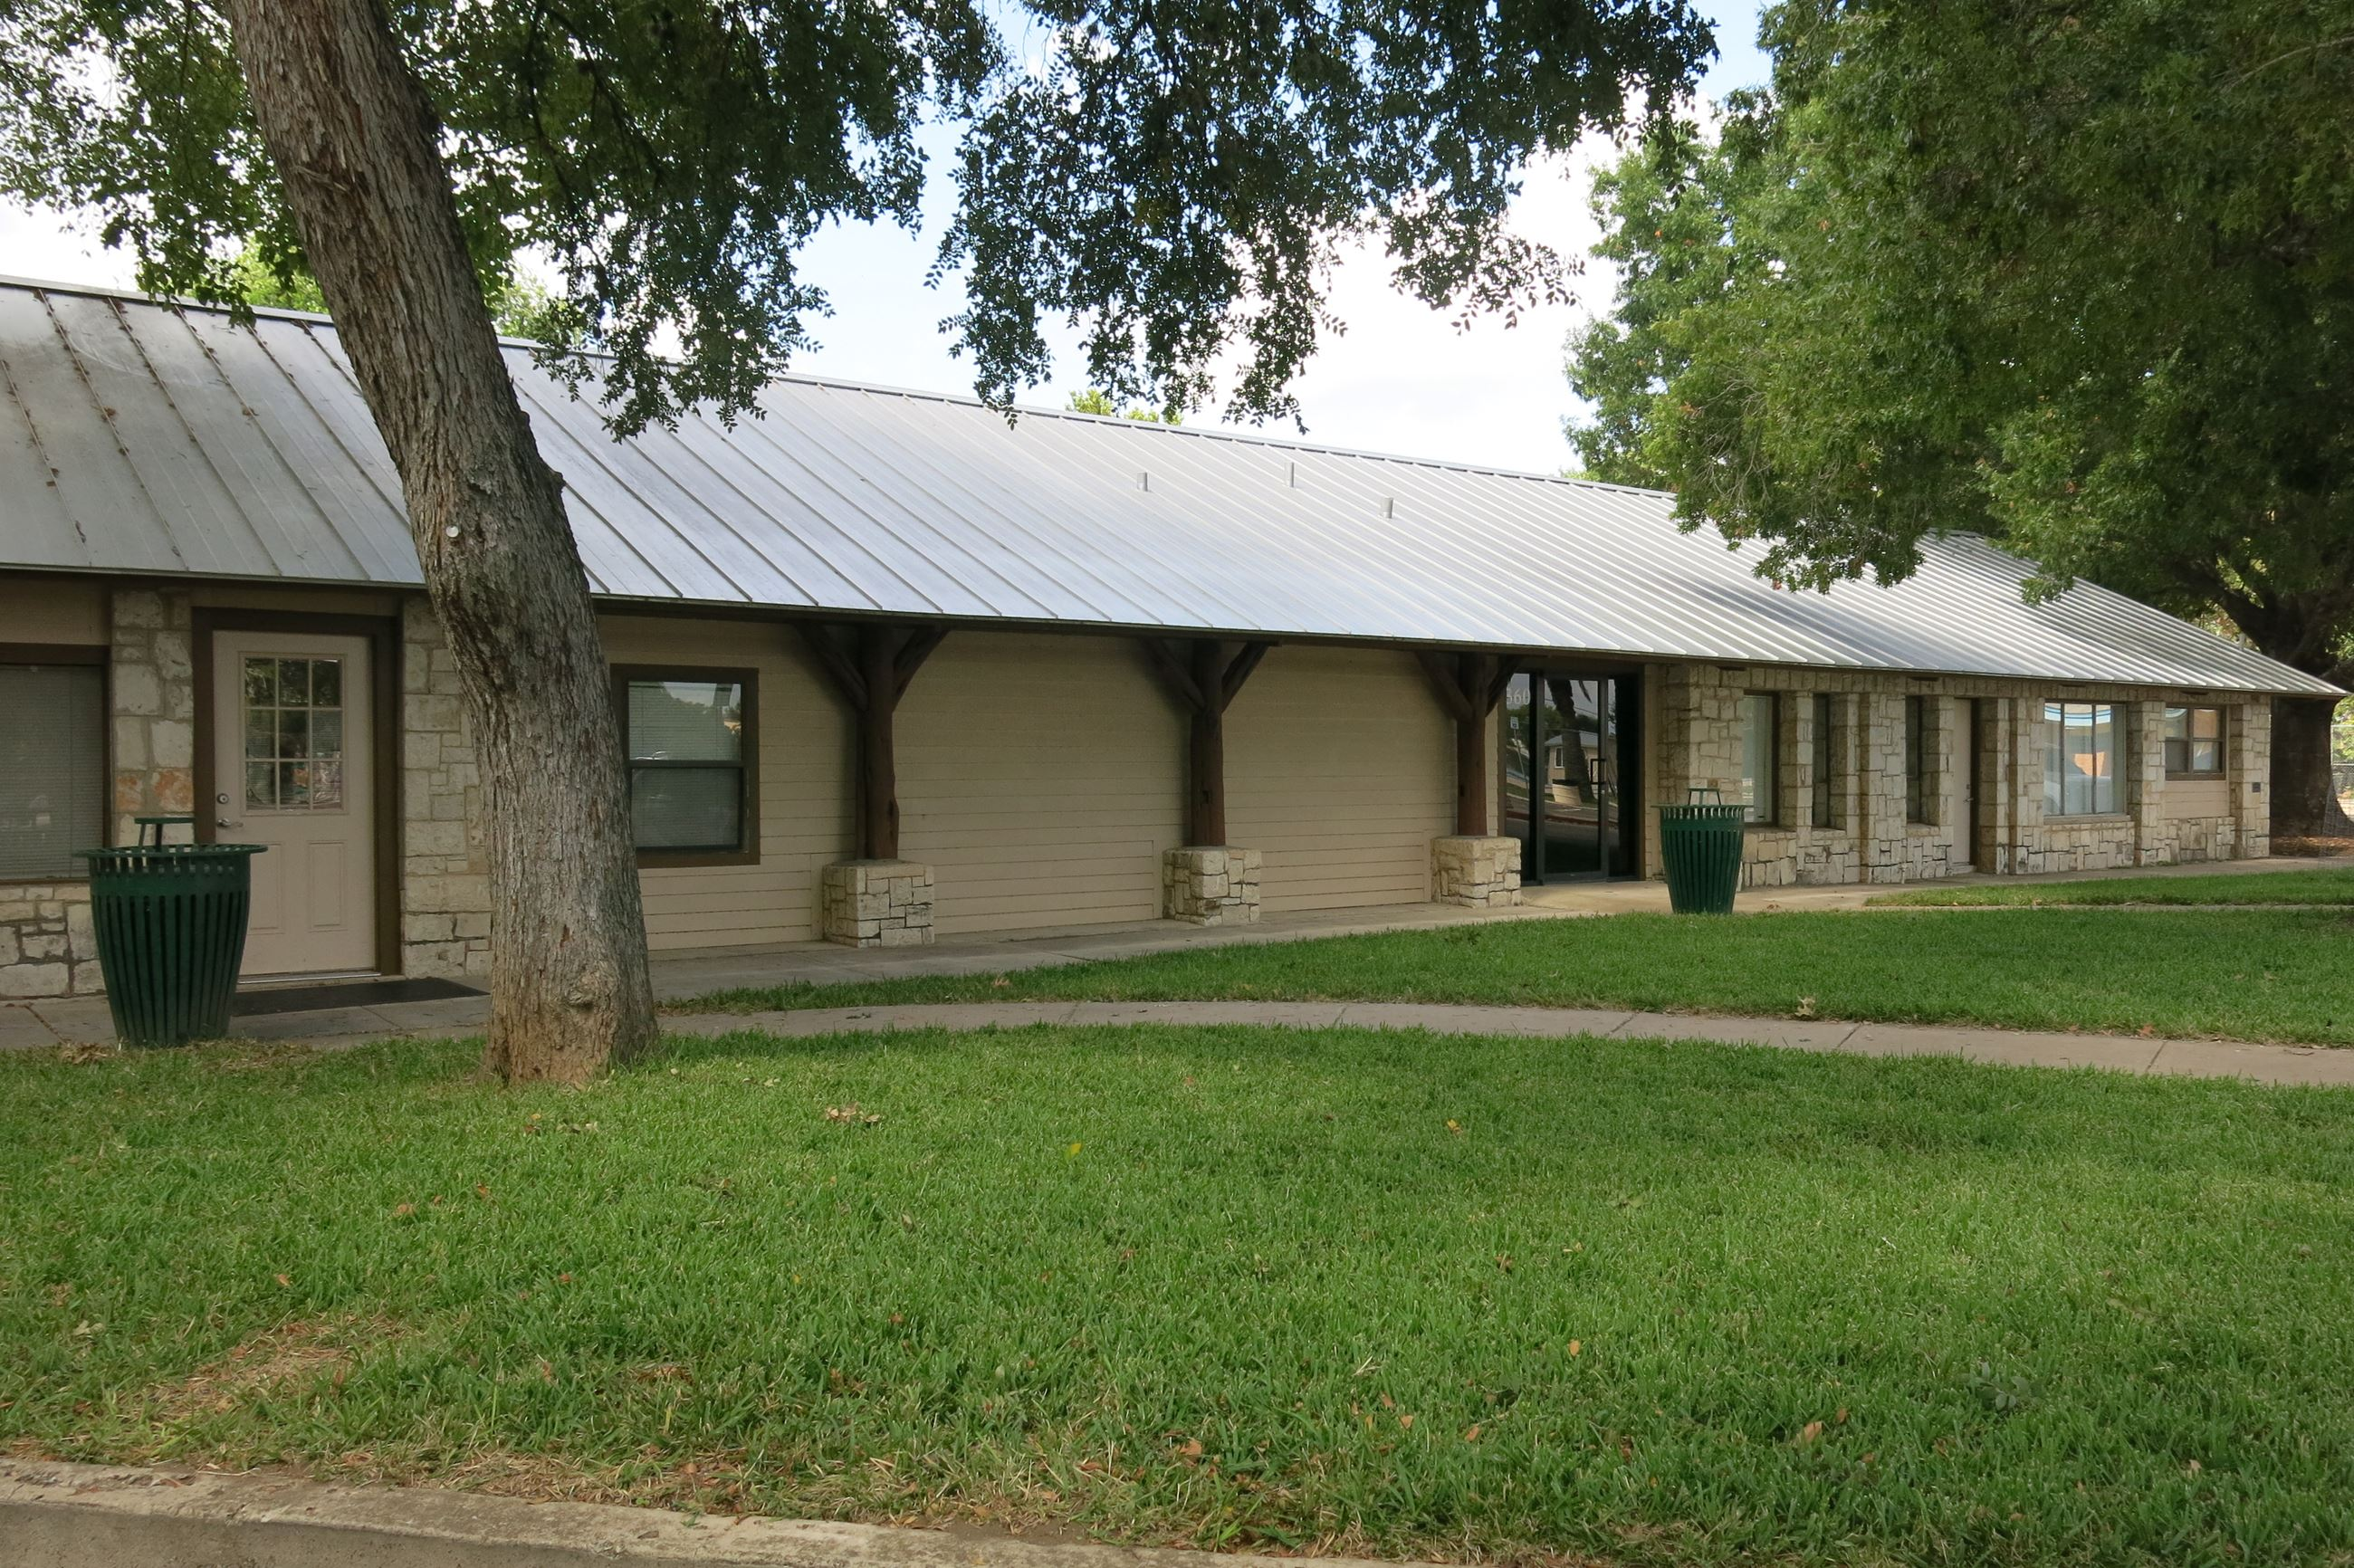 hideout in rental redawning braunfels the cabin vacation new rentals home cabins property